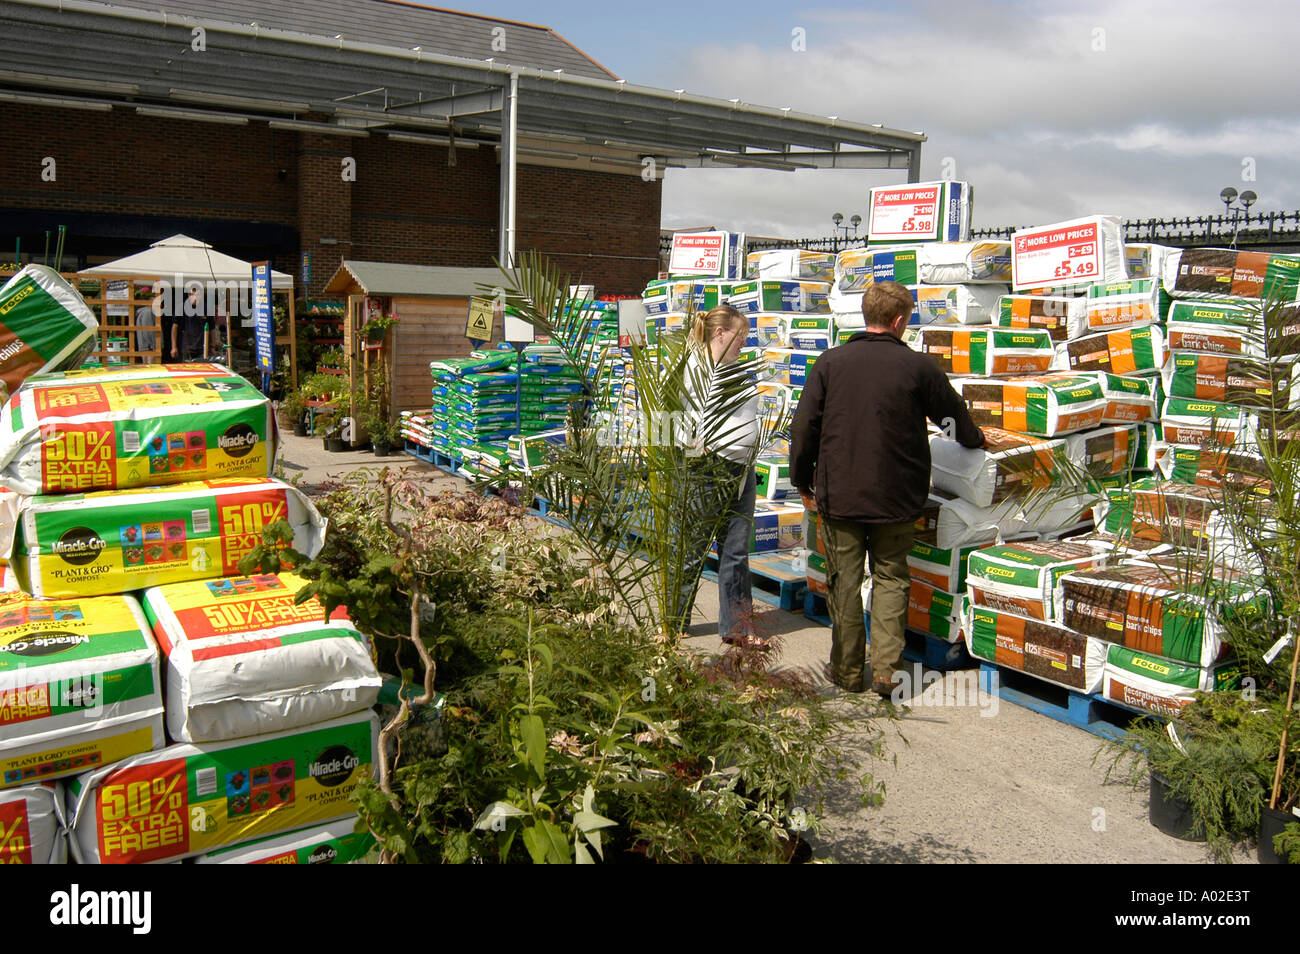 People shopping focus diy do it yourself and garden centre store people shopping focus diy do it yourself and garden centre store parc y llyn aberystwyth garden plants and flowers paraphanalia solutioingenieria Image collections